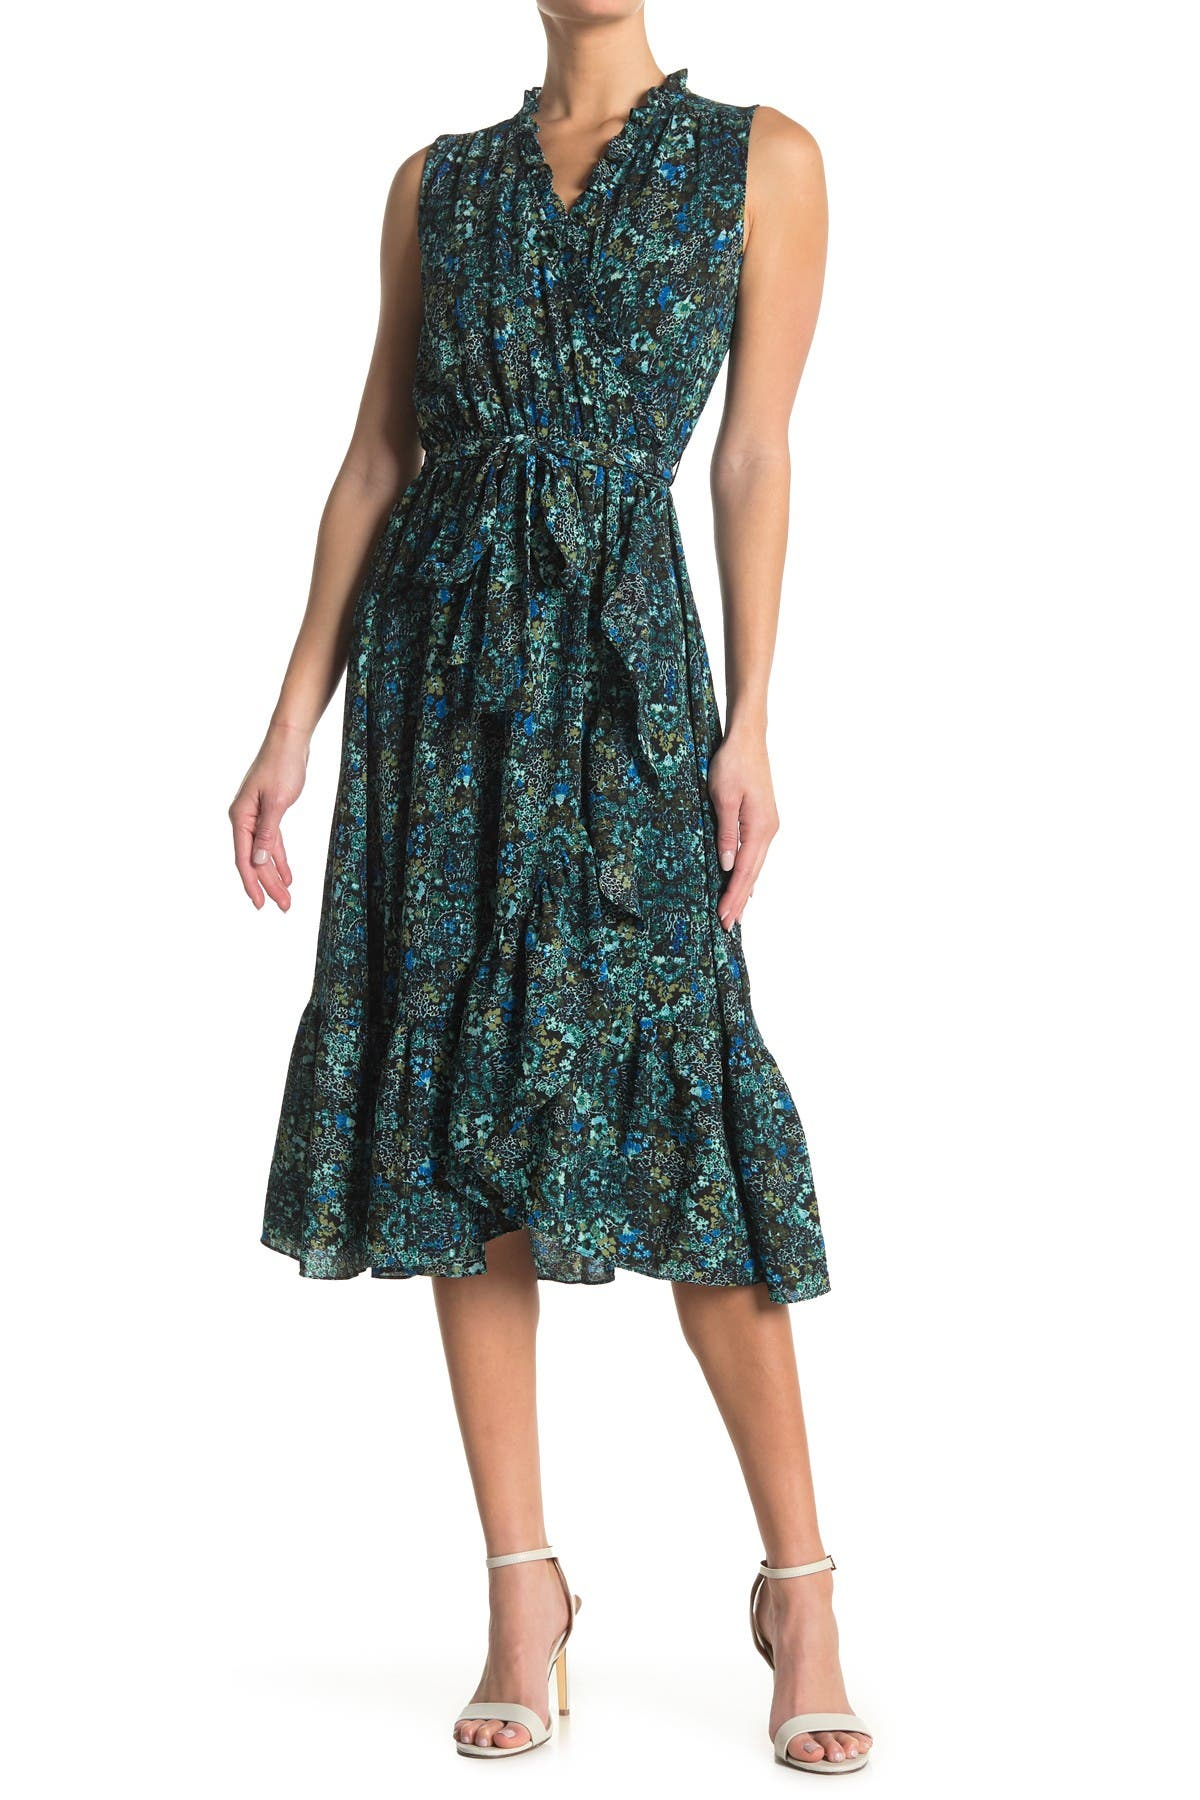 Image of London Times Floral Sleeveless Wrap Dress